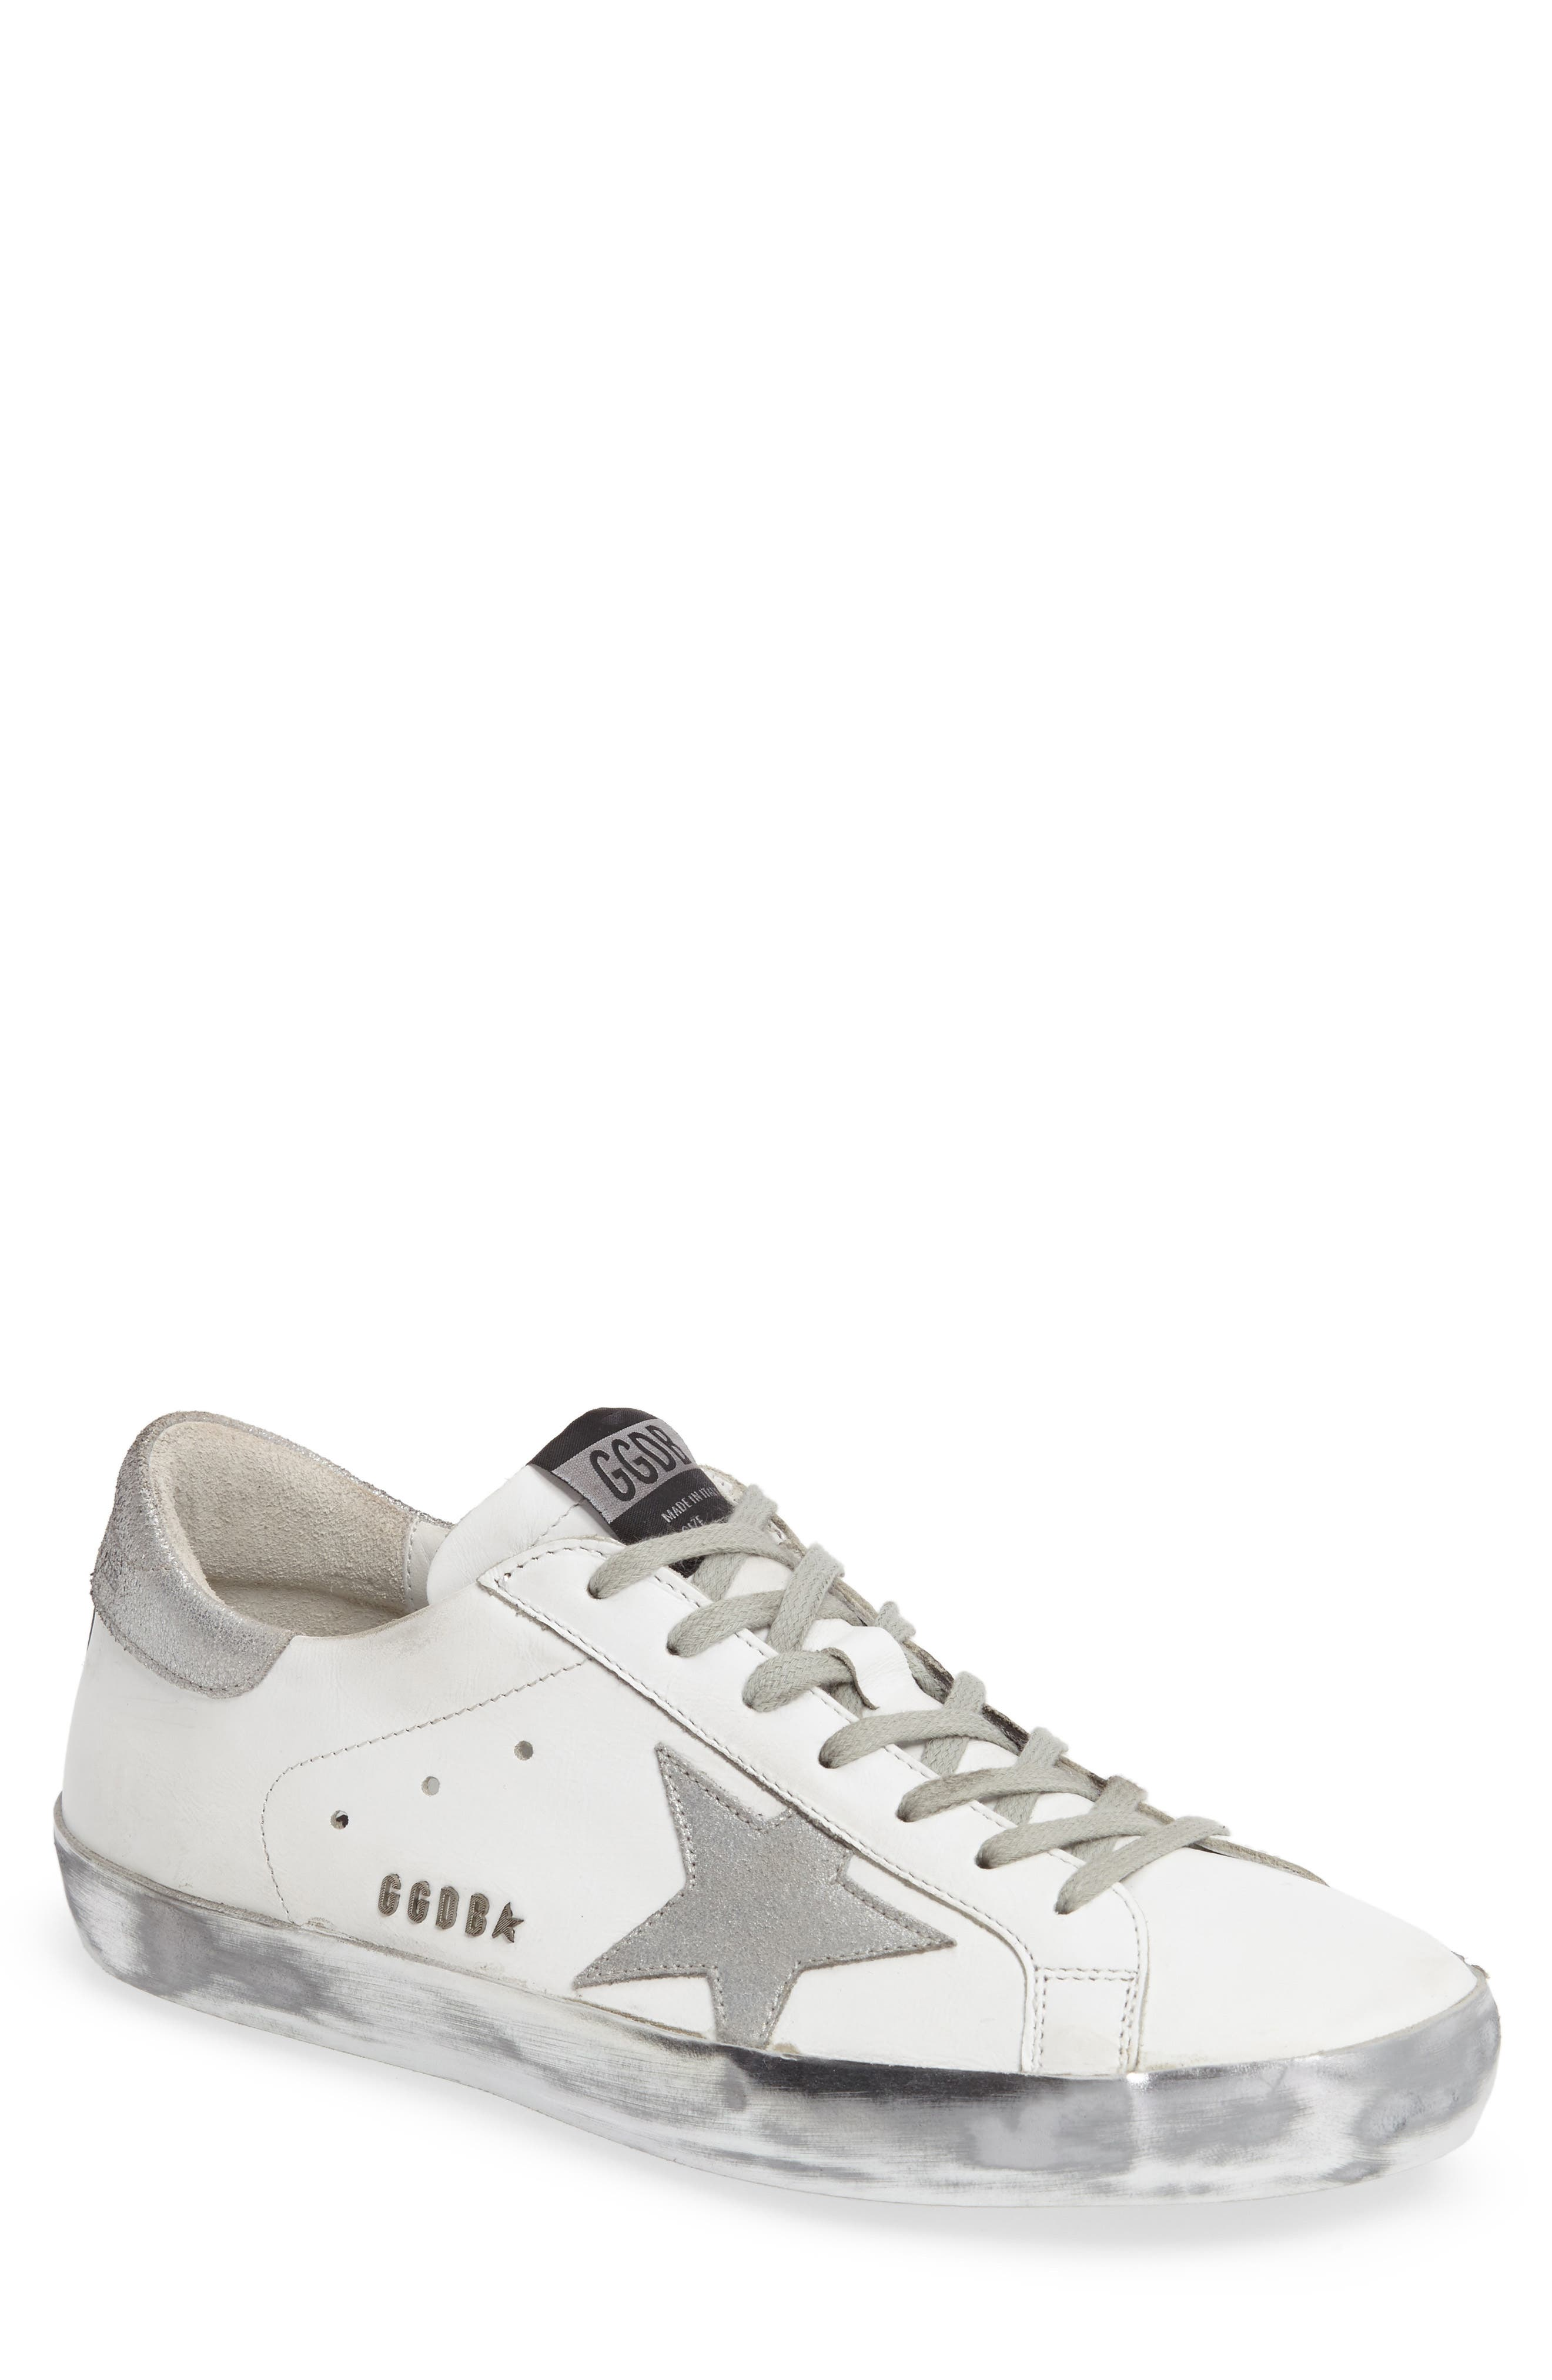 Alternate Image 1 Selected - Golden Goose 'Superstar' Sneaker (Men)